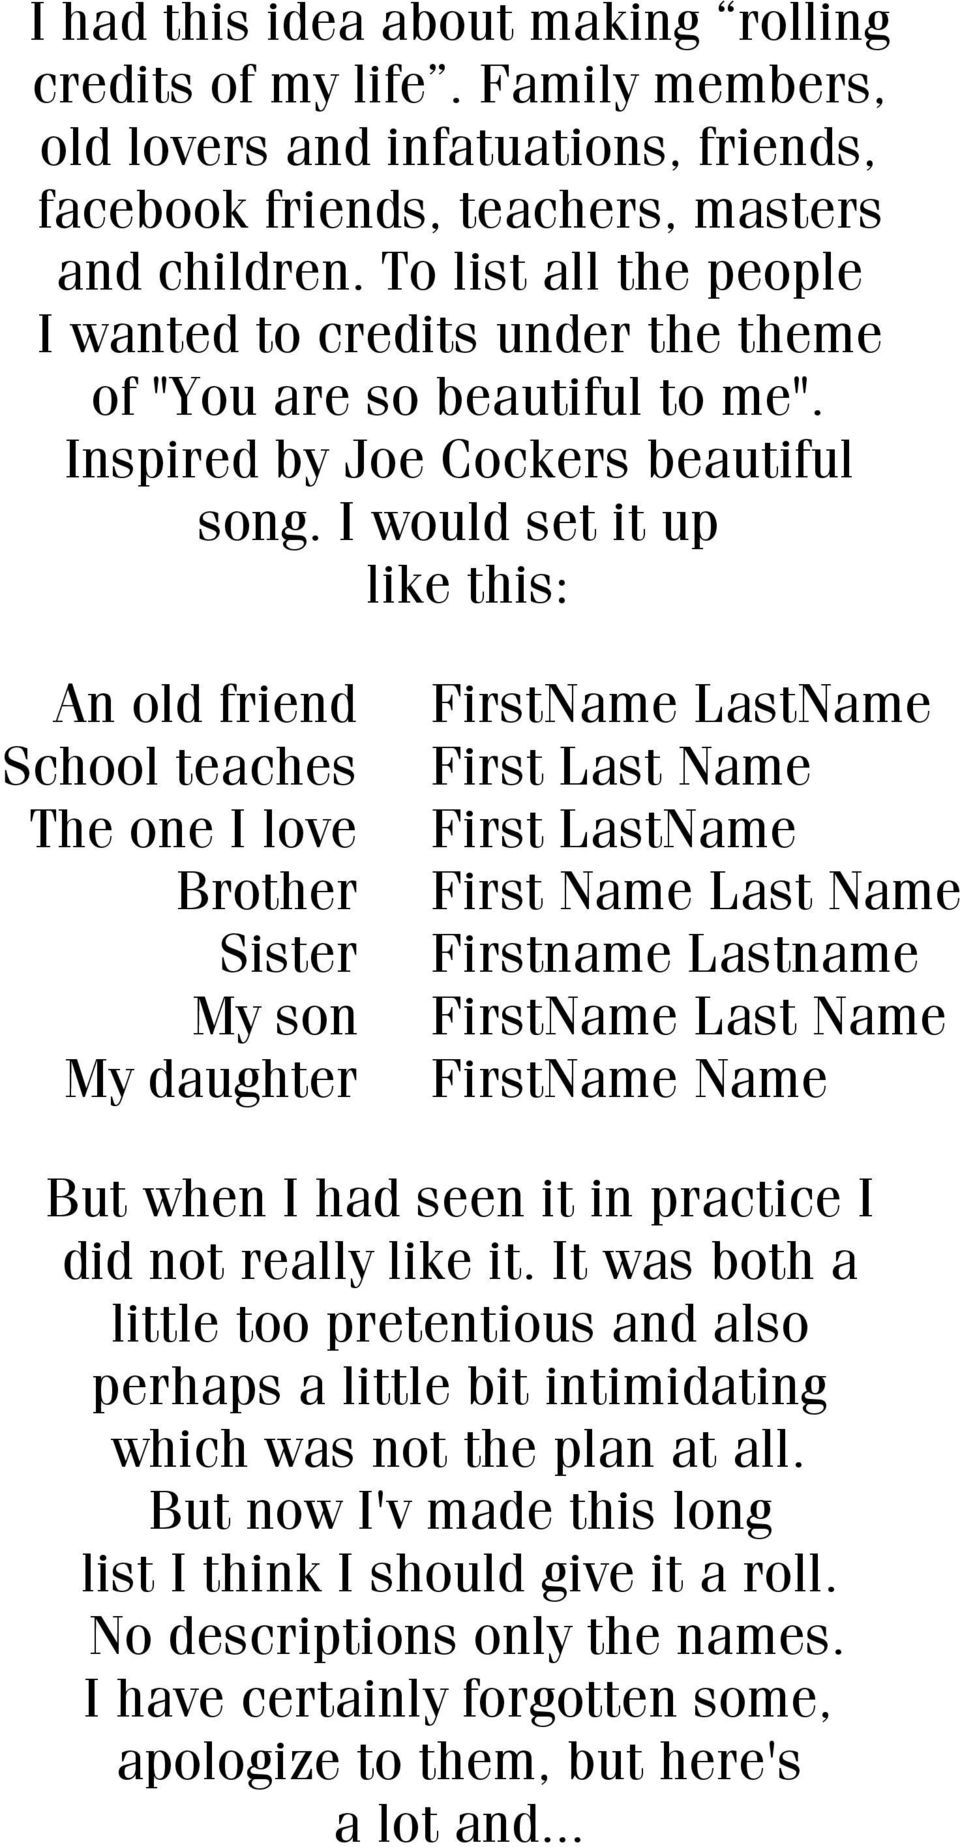 I would set it up like this: An old friend School teaches The one I love Brother Sister My son My daughter FirstName LastName First Last Name First LastName First Name Last Name Firstname Lastname